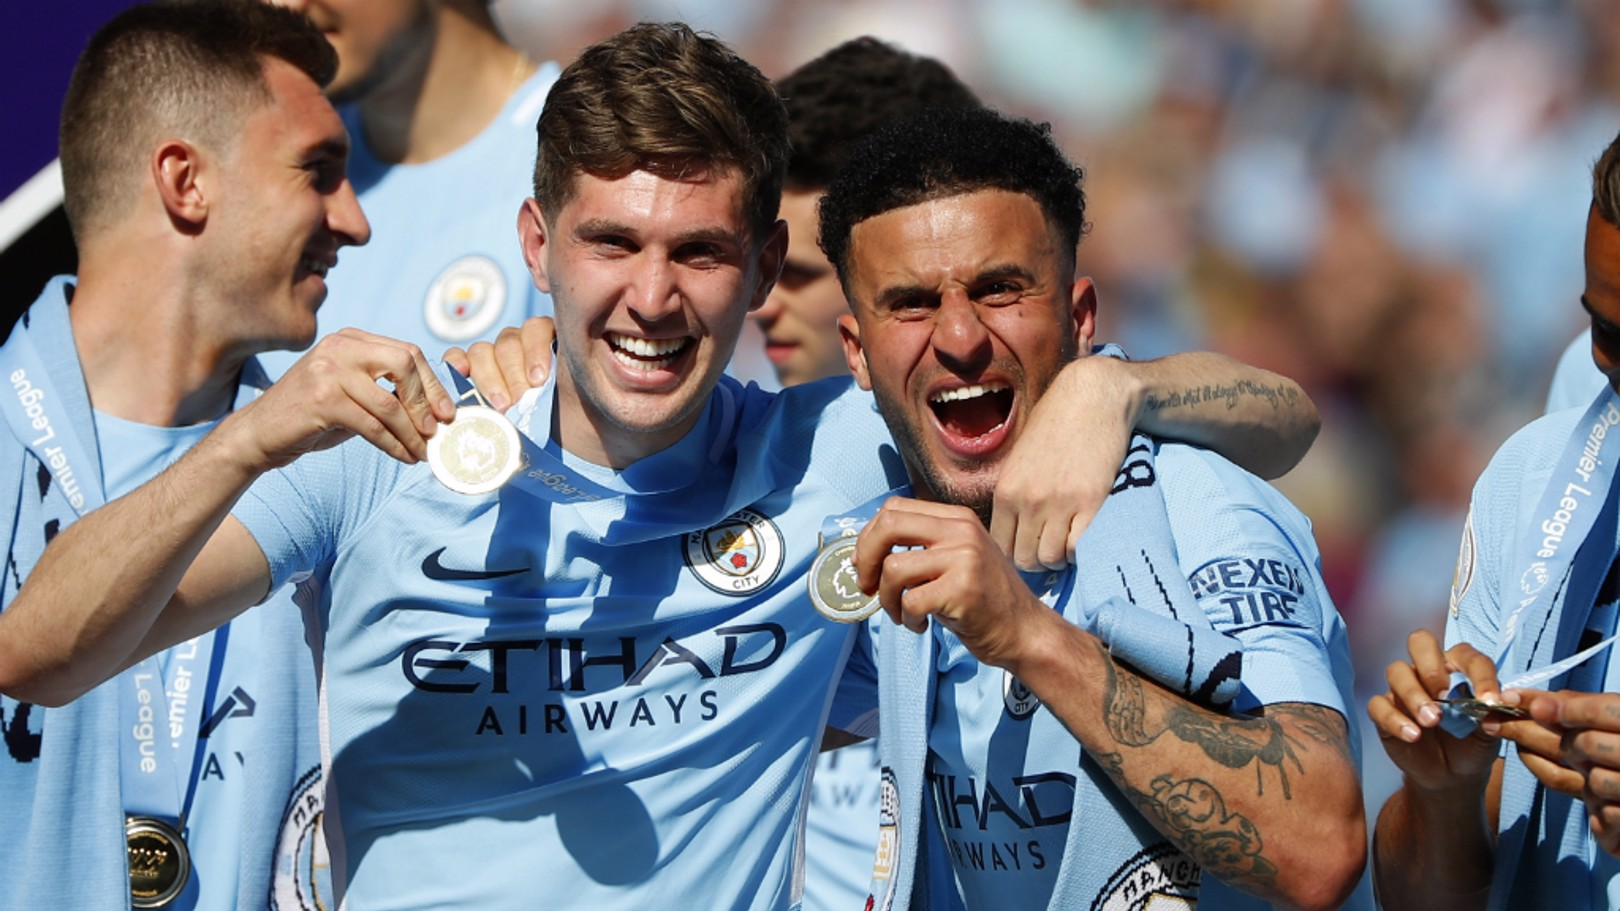 PREMIER LEAGUE DREAMS: John Stones and Kyle Walker celebrate their first league titles